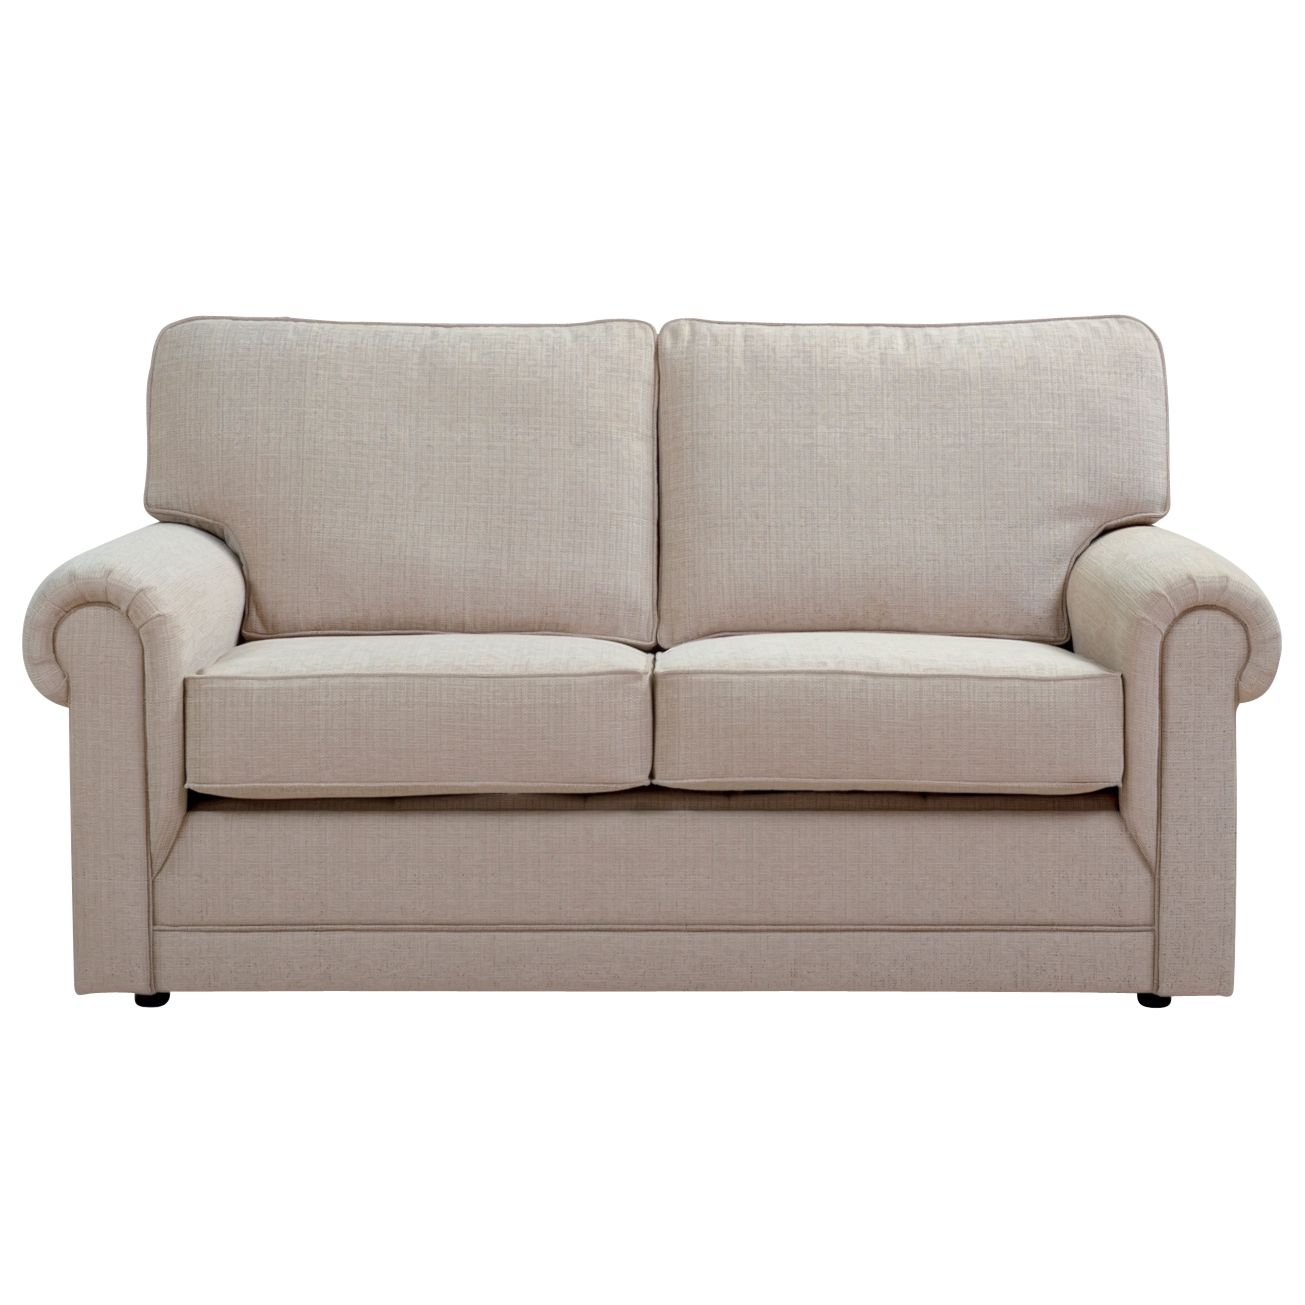 sleeper sofa comparison throw pillow for leather john lewis elgar small bed pumice review compare